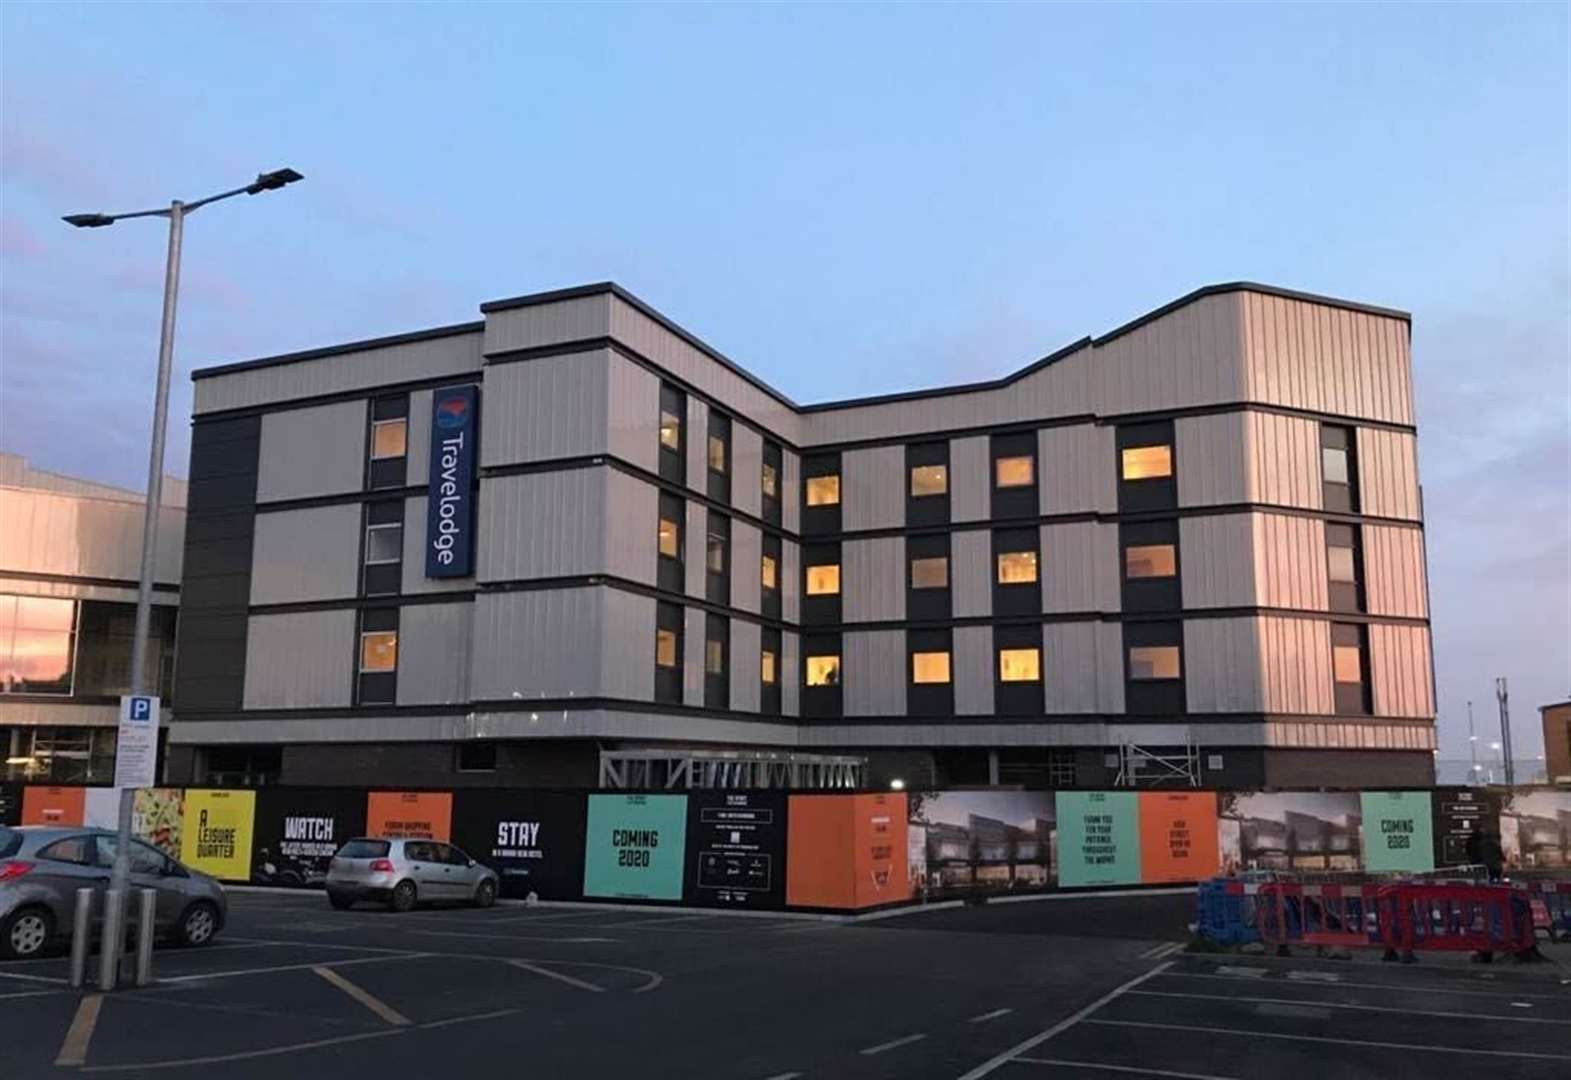 Travelodge gets over 1,500 job applications for new hotel